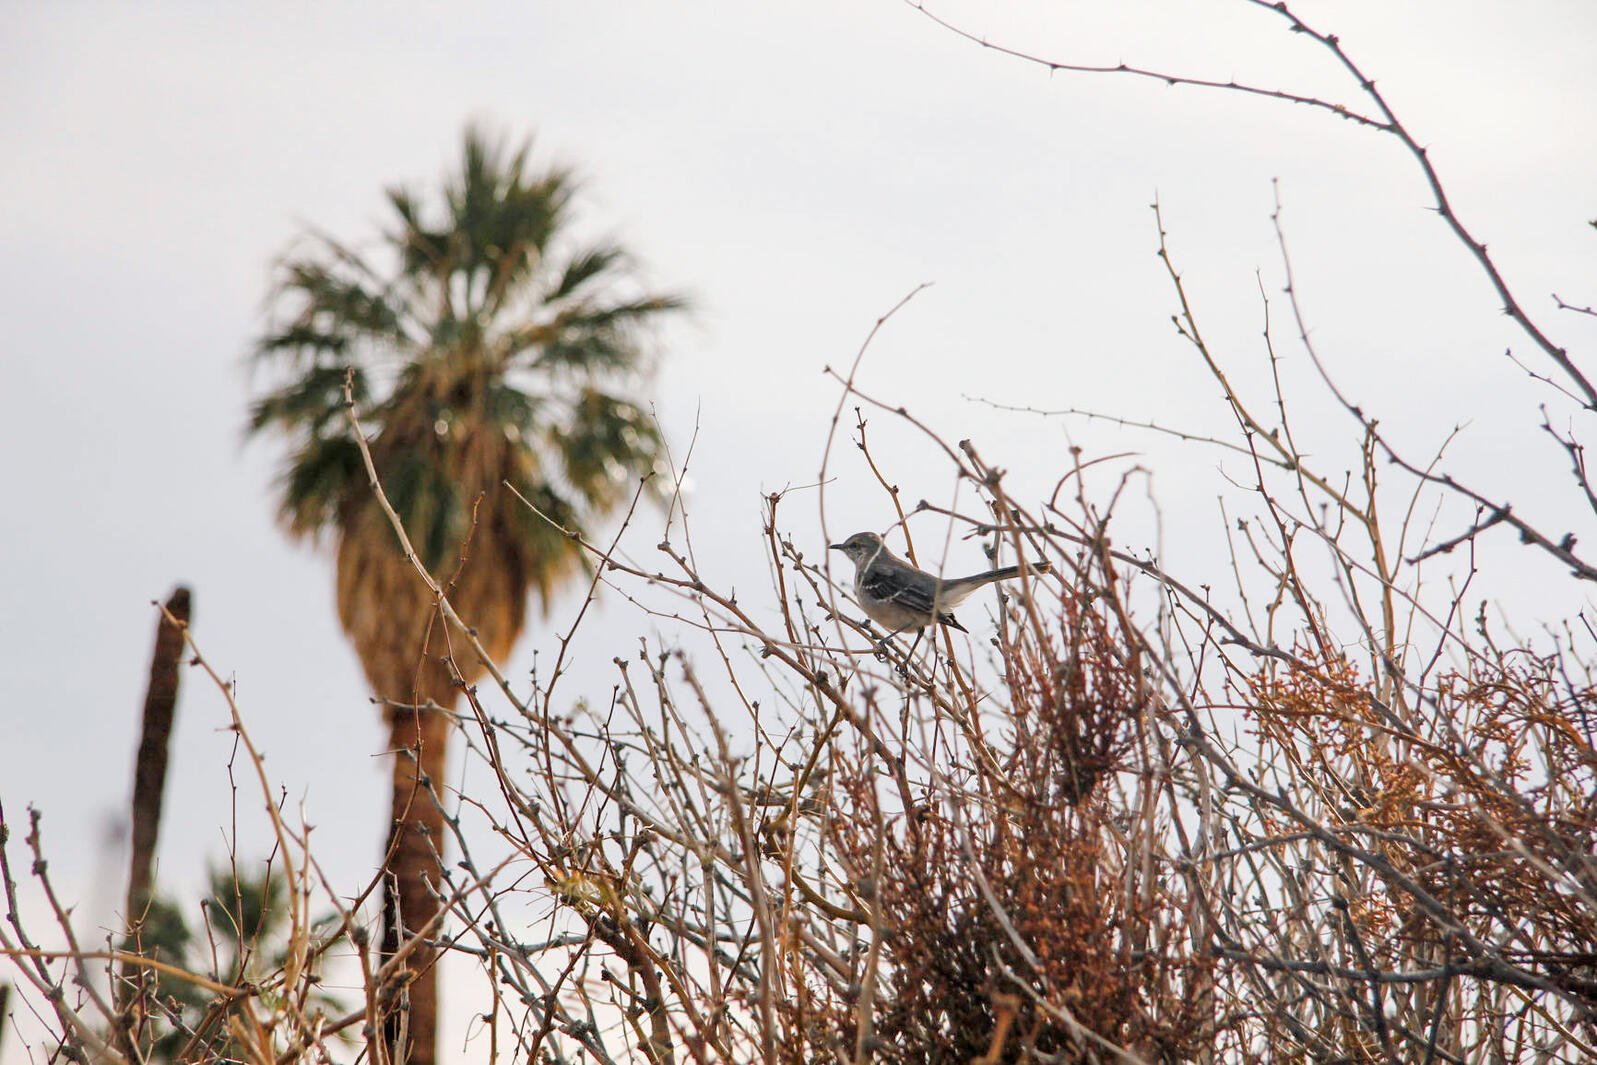 Northern Mockingbirds are disappearing from the Mojave Desert as it gets hotter and drier. Natural History Archive/Alamy